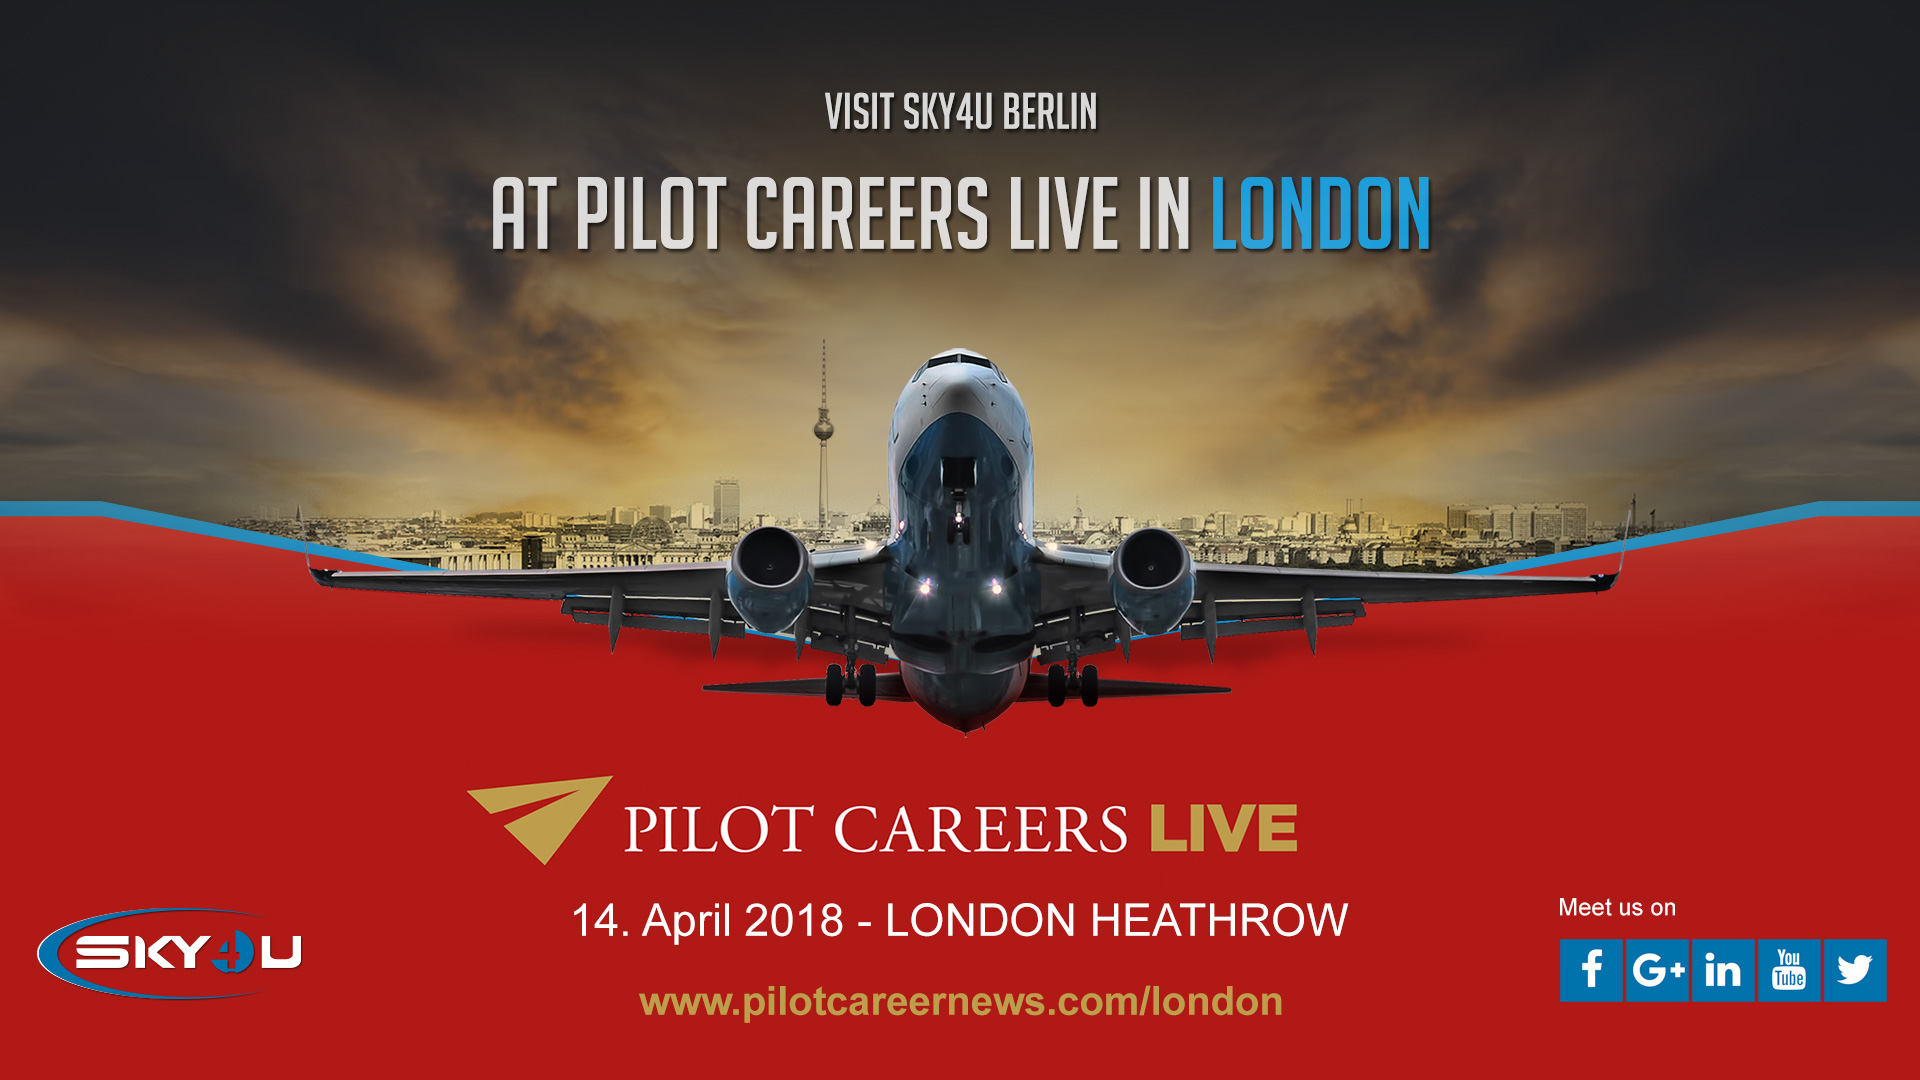 Pilot-Careers-Live-London-2018